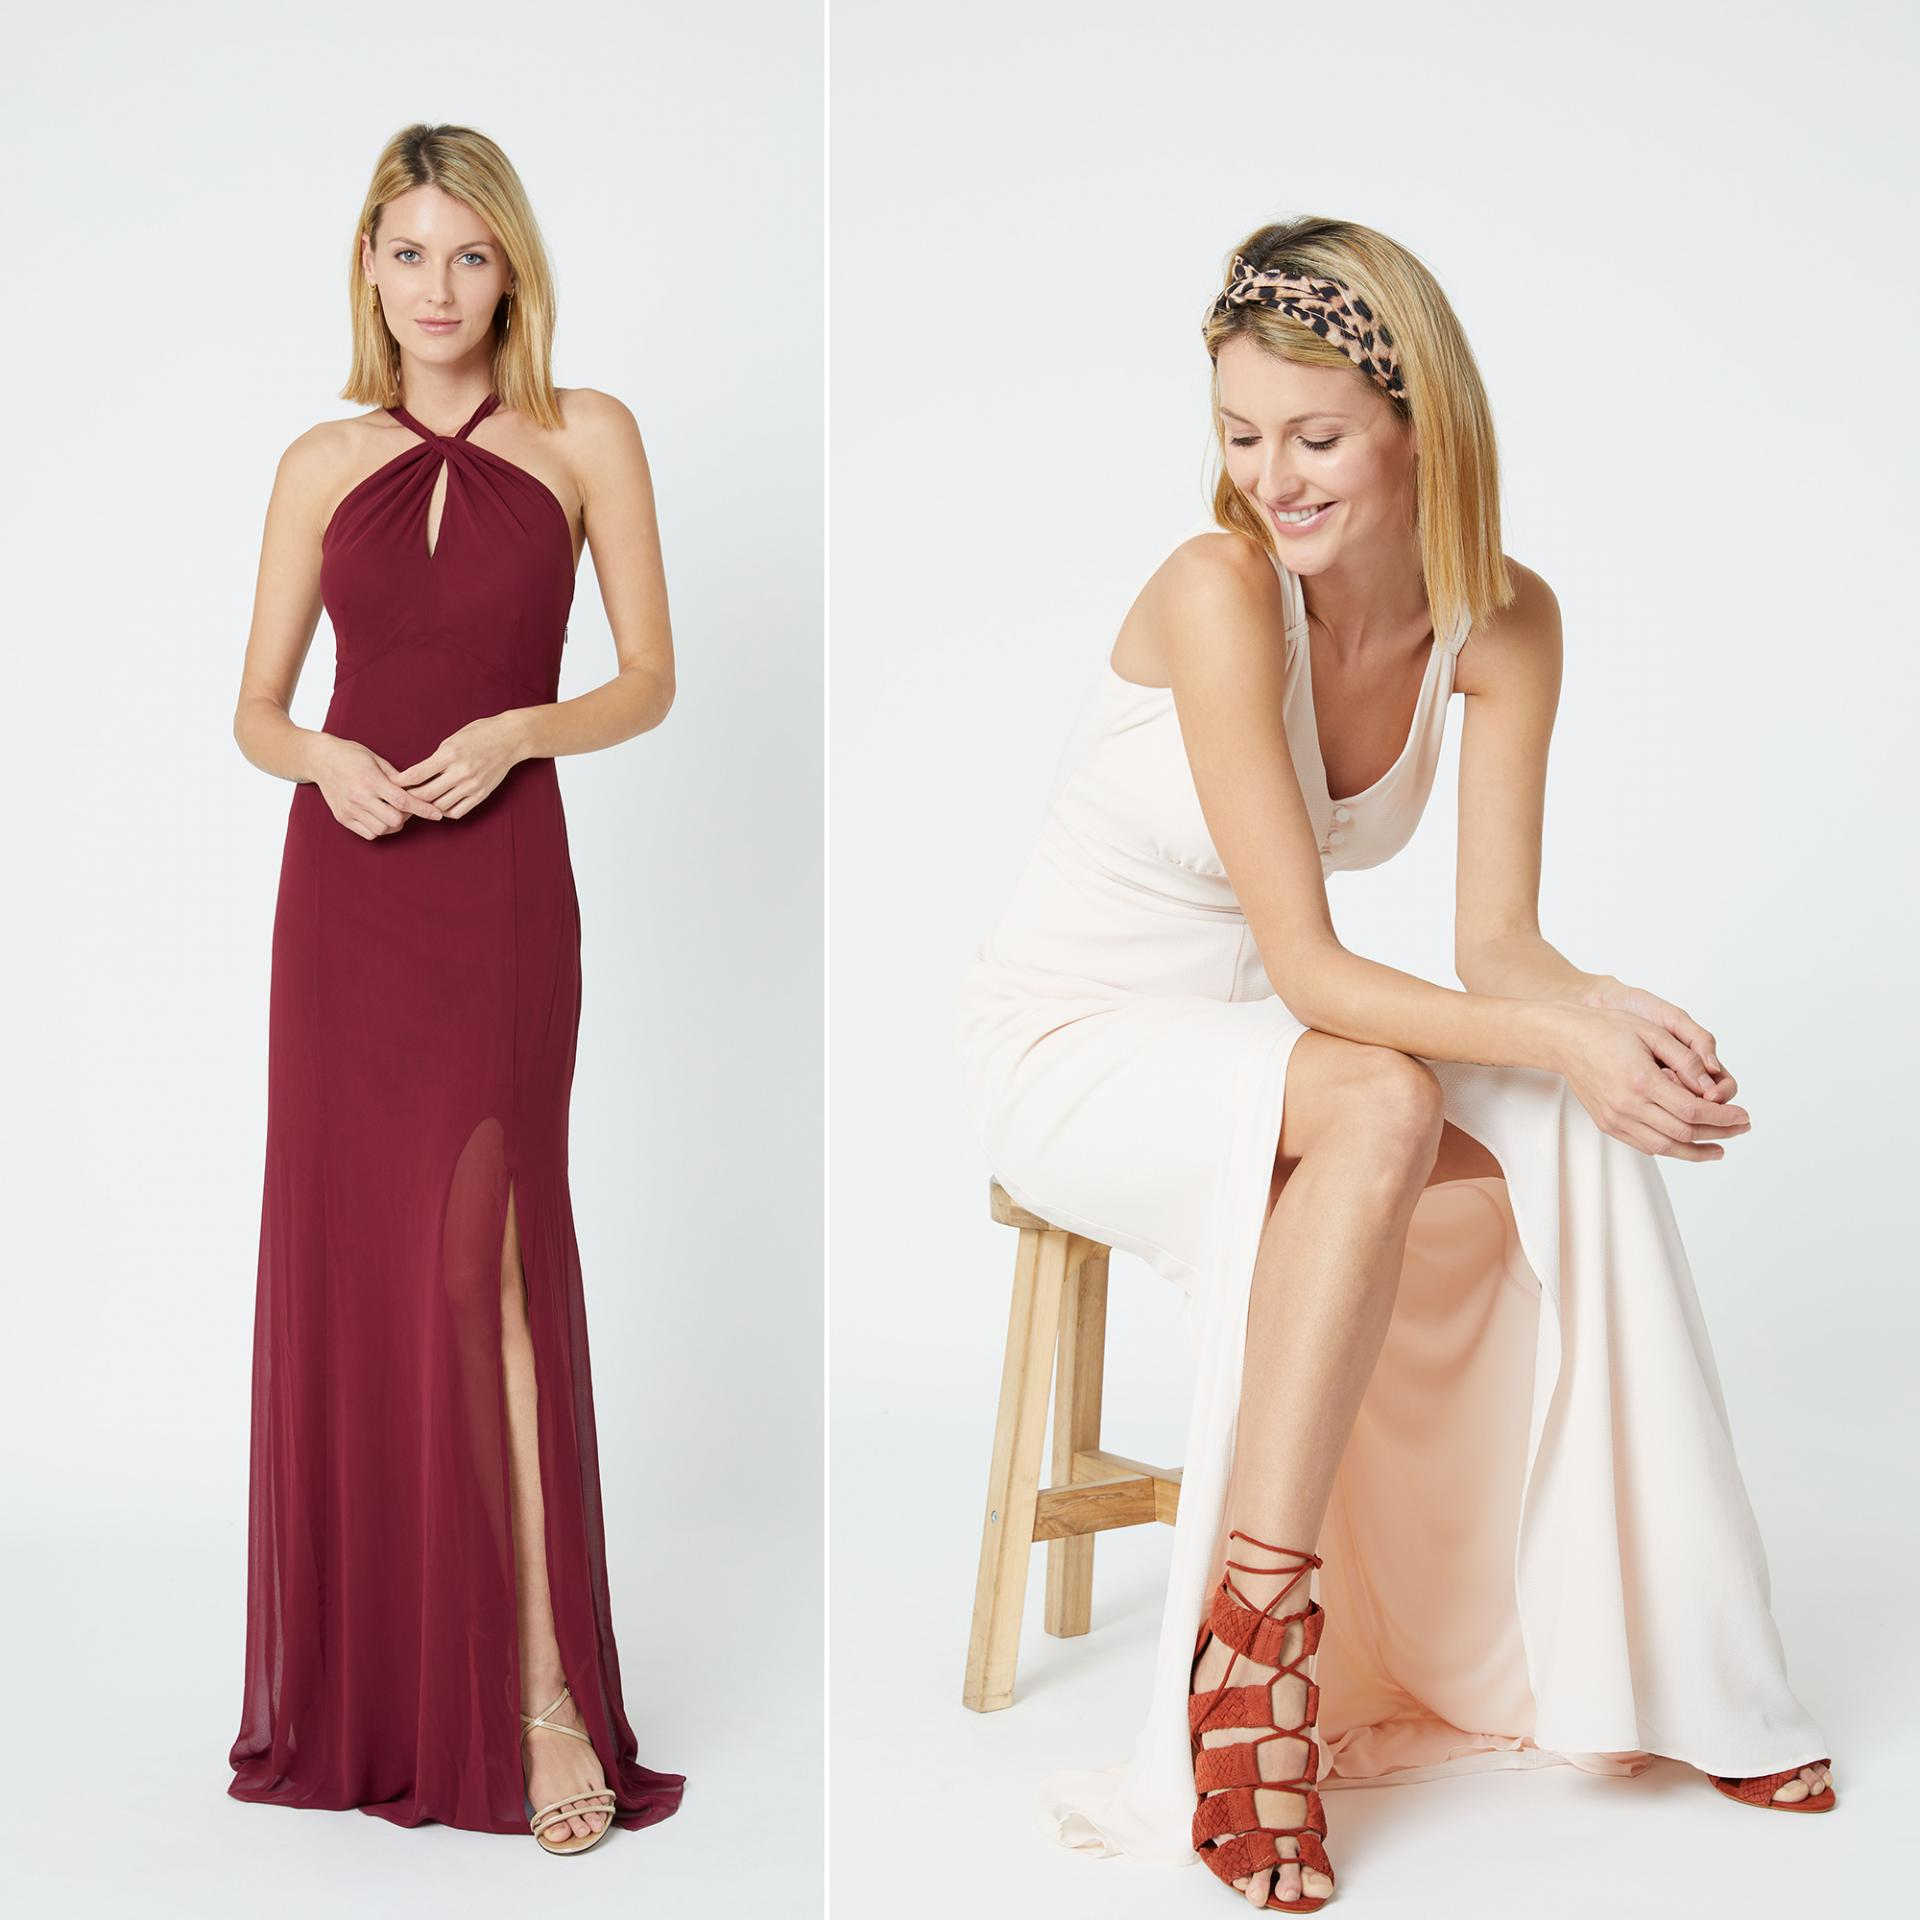 Wedding Gowns In London: The Best Bridesmaid Dresses & Boutiques In London